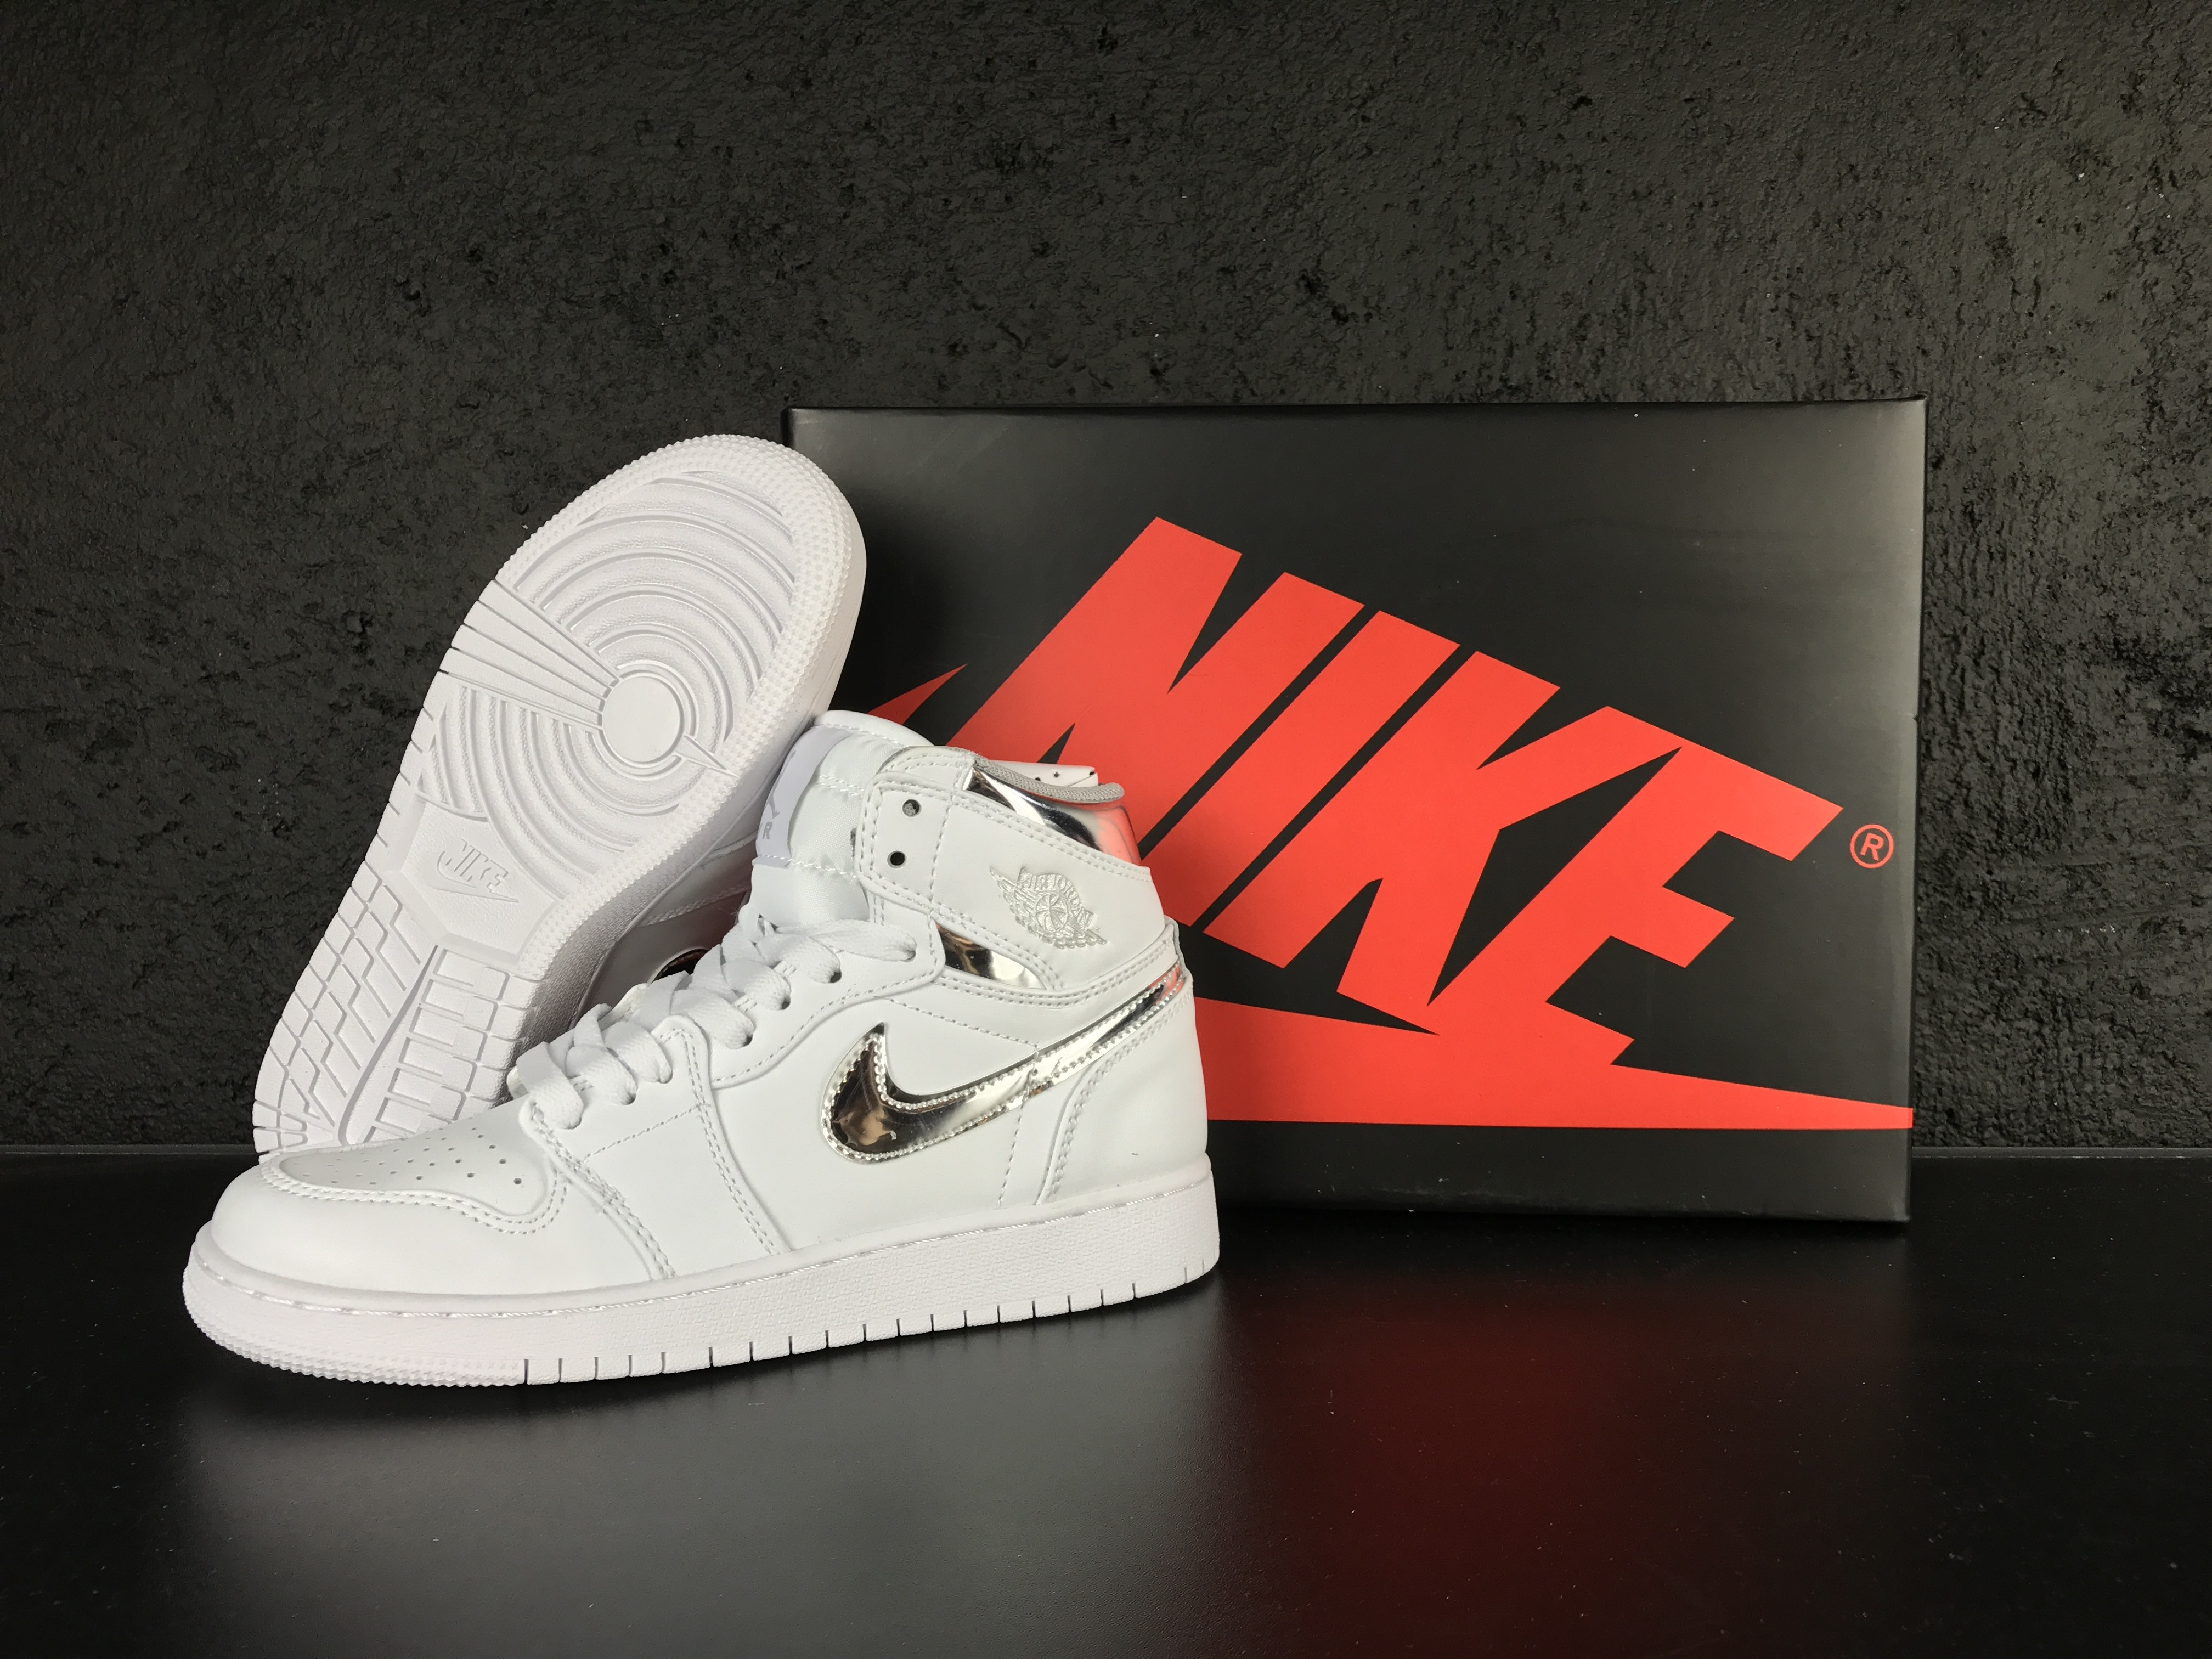 Women 2017 Air Jordan 1 Retro White Silver Shoes